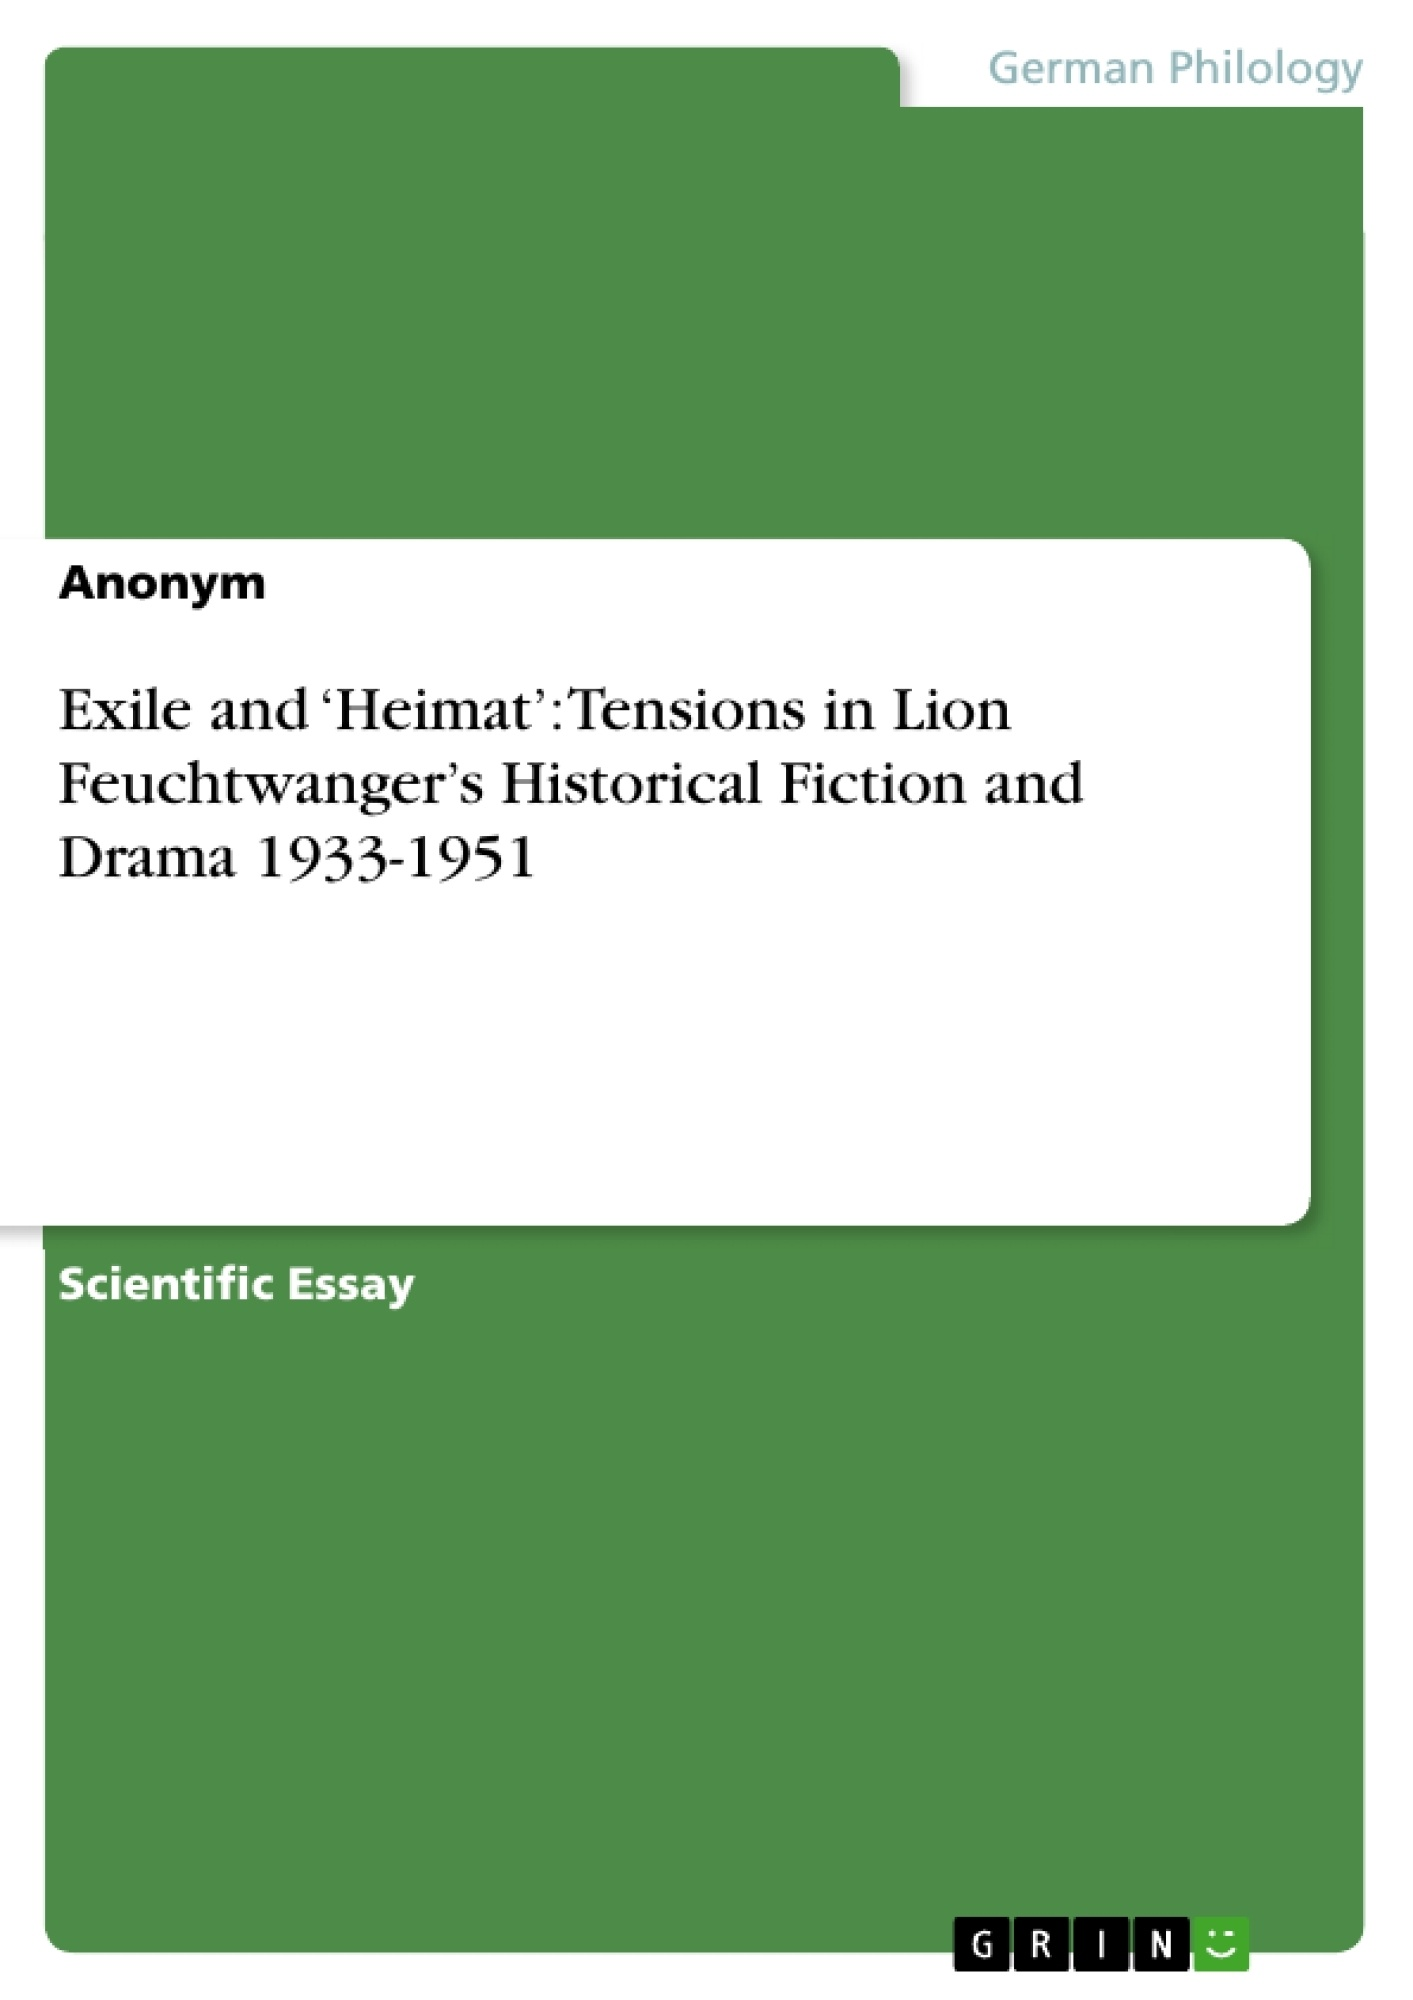 Title: Exile and 'Heimat': Tensions in Lion Feuchtwanger's Historical Fiction and Drama 1933-1951